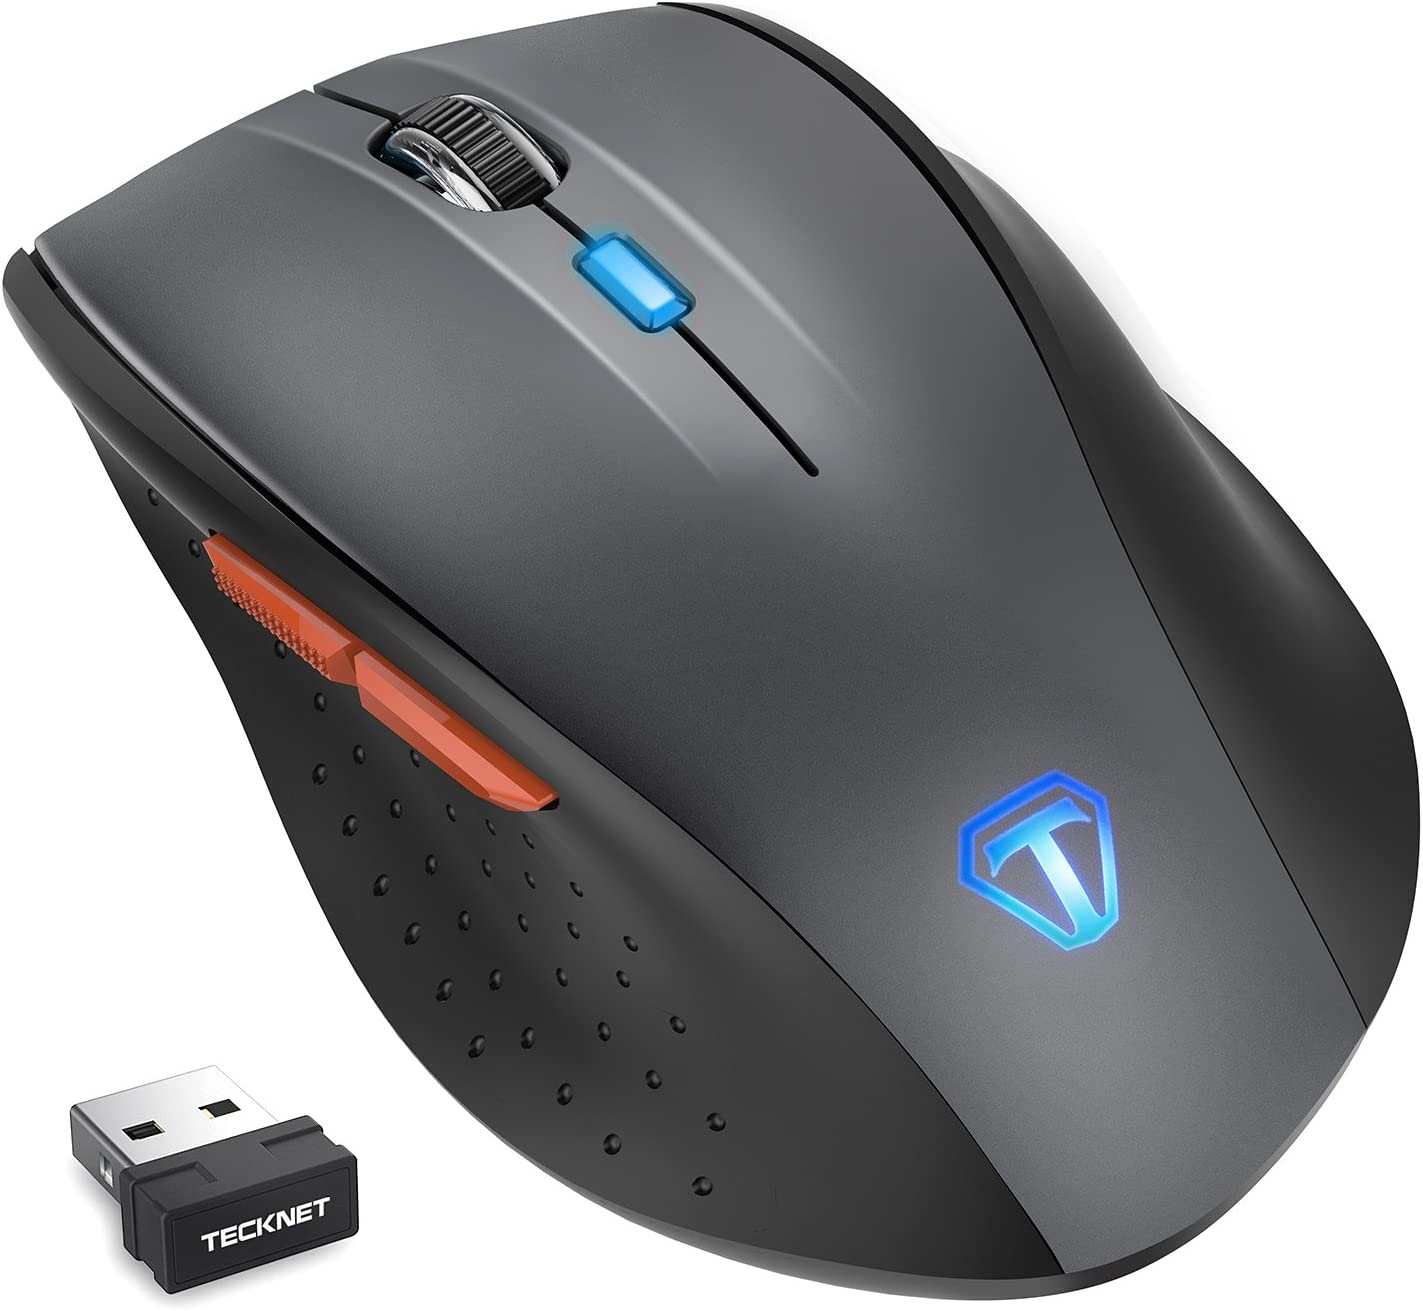 TeckNet Classic 2.4G Programmable Wireless Mouse with USB Nano Receiver,6 Buttons,18 Months Battery Life, 4800 DPI, 6 Adjustment Levels